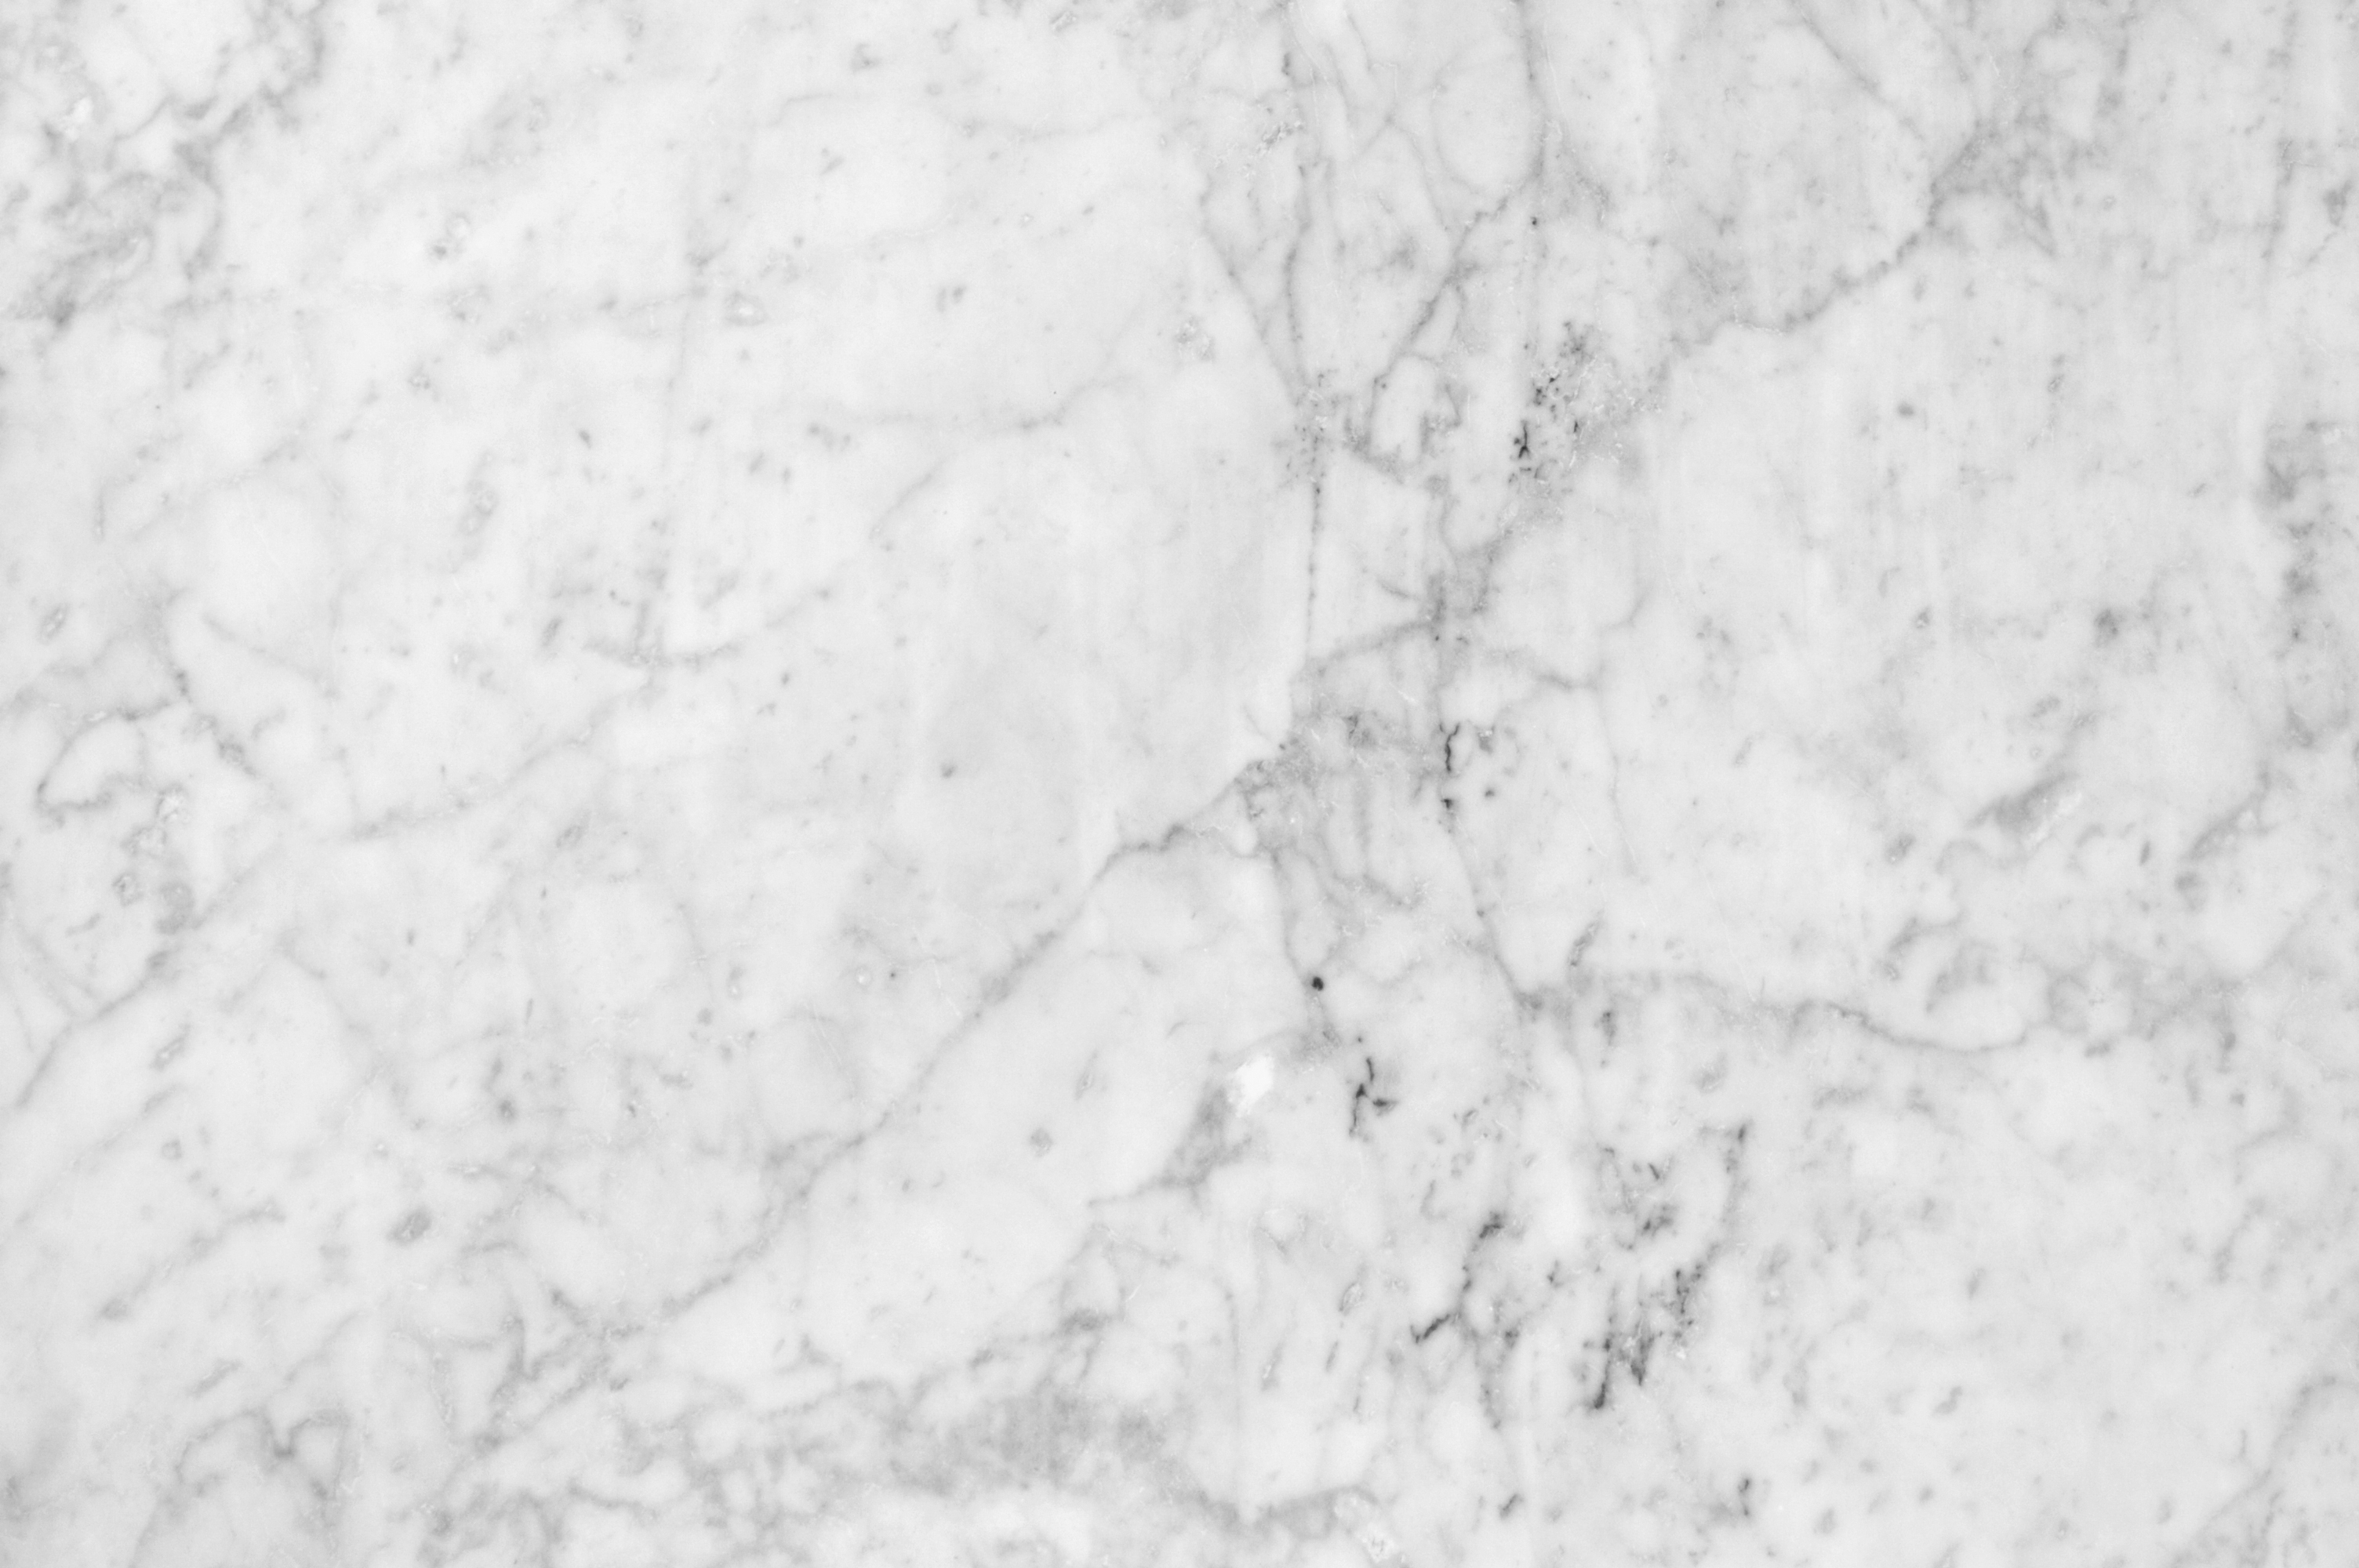 Textures Flat Marble Backgrounds